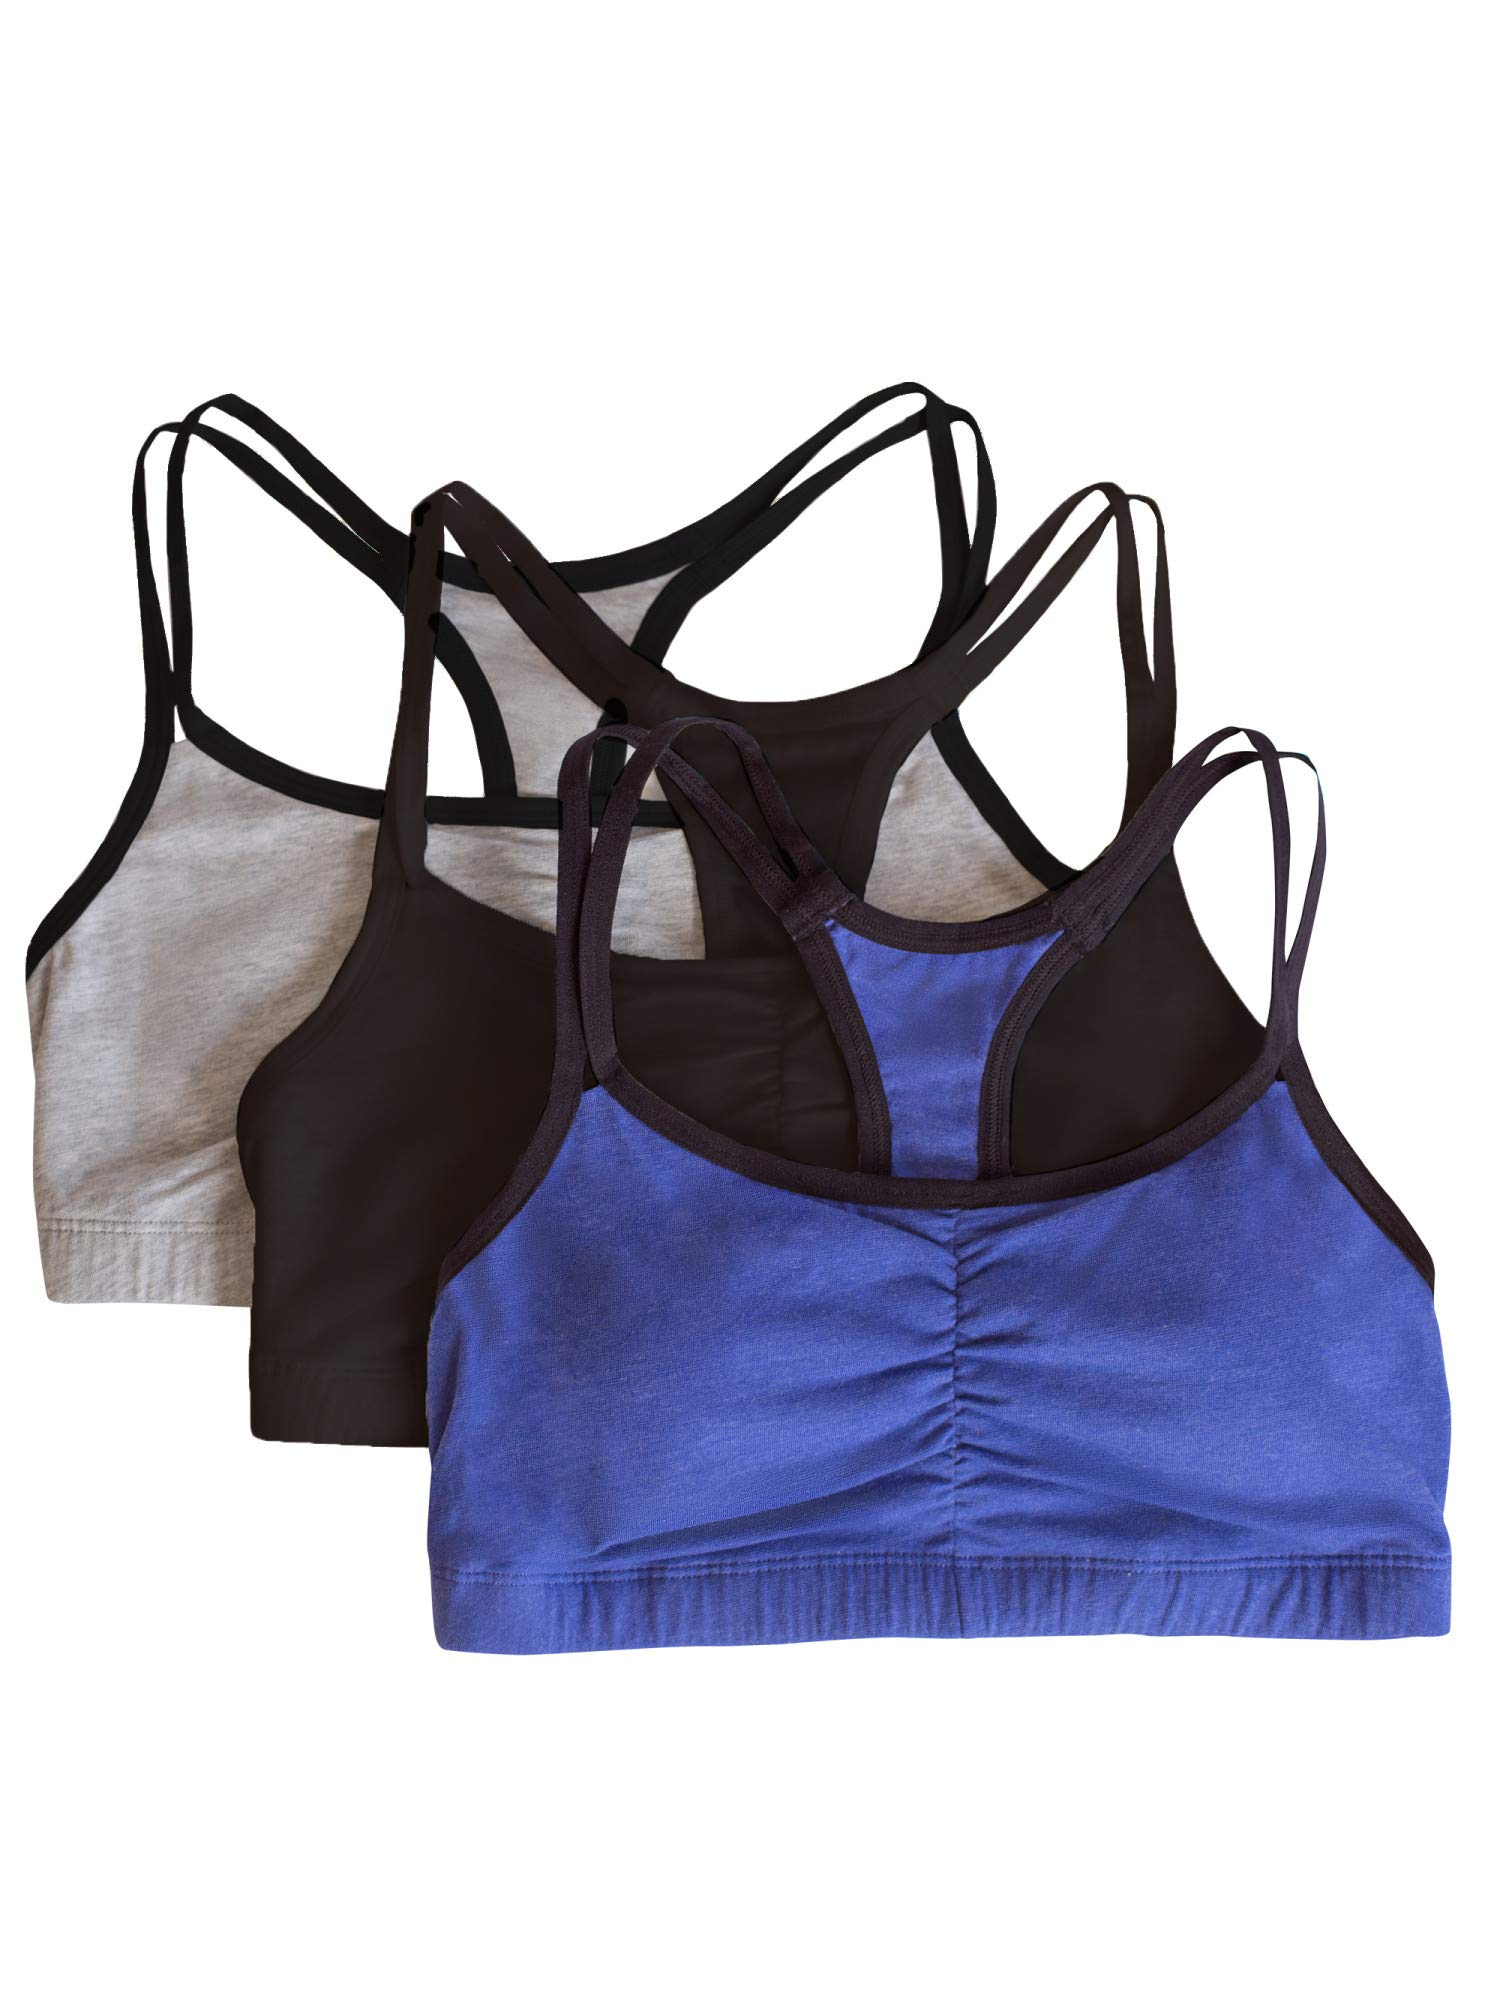 Fruit of the Loom Women's Cotton Pullover Sport Bra, Grey Navy Heather Black-3 Pack, 32